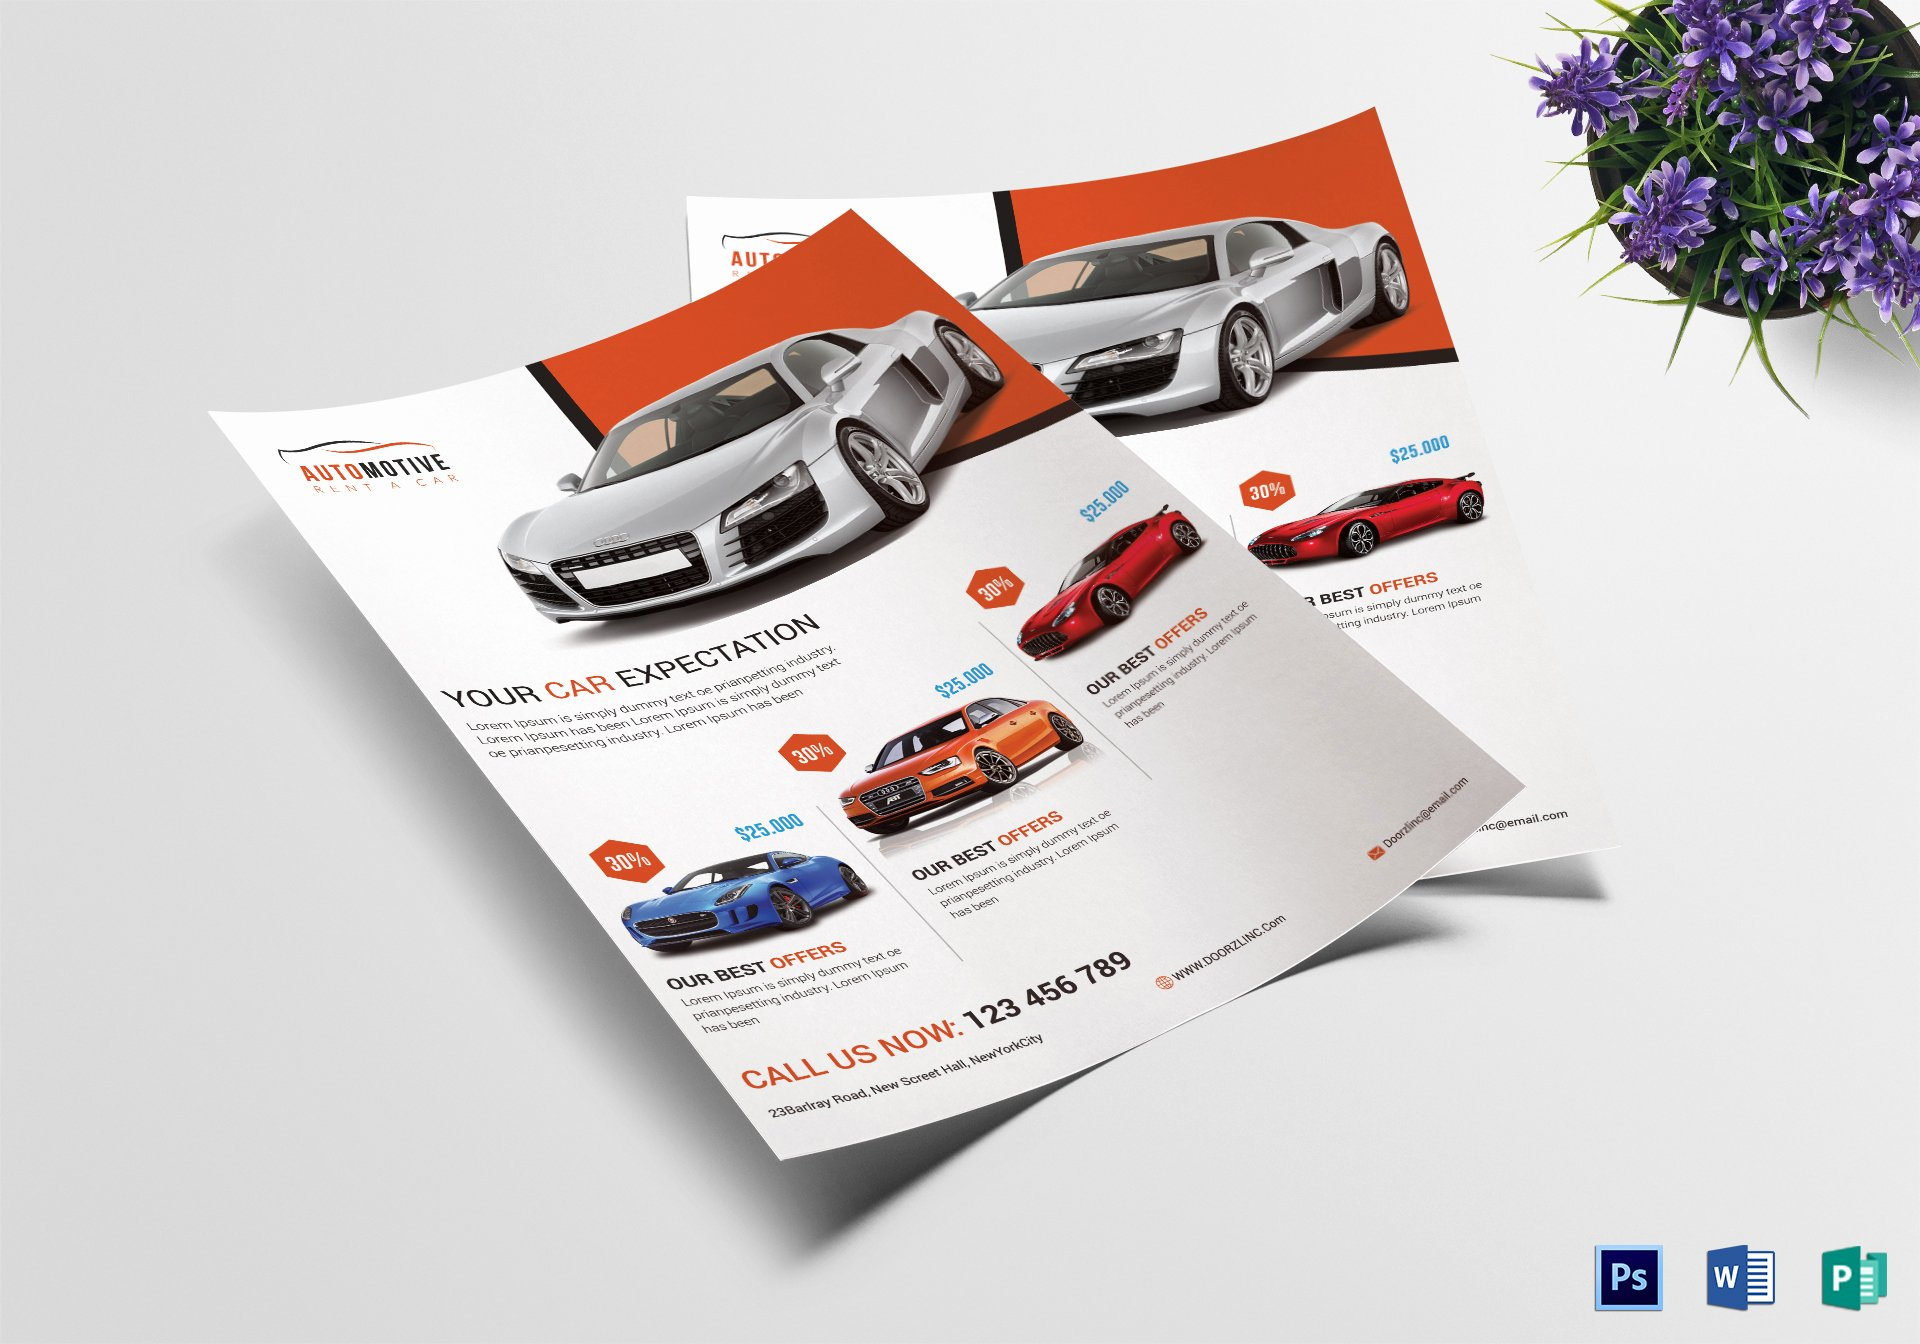 Car for Sale Flyer Template Fresh Automotive Car Sale Flyer Design Template In Psd Word